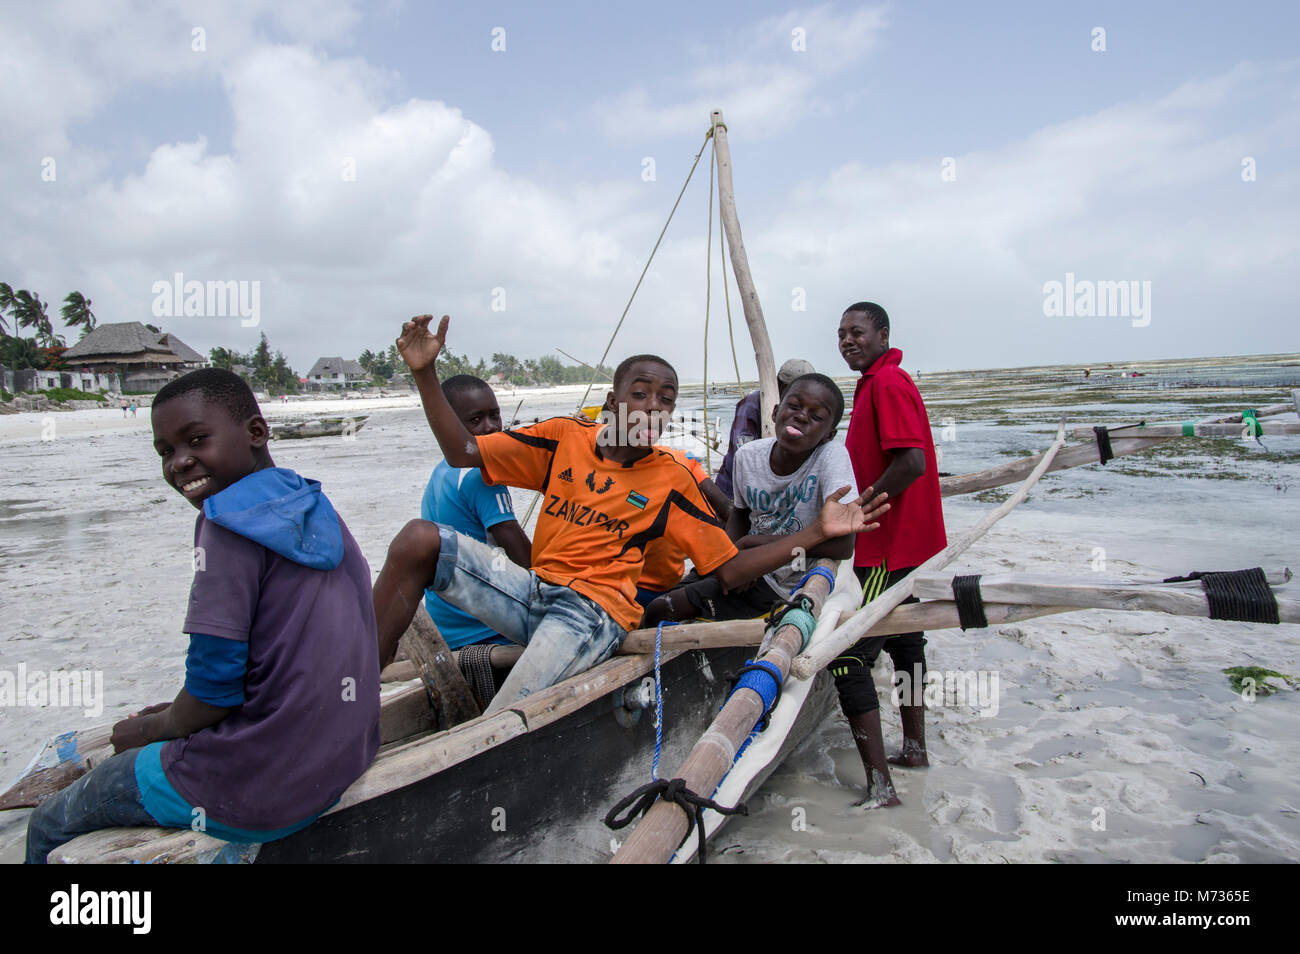 six boys in jambiani beach in zanzibar making silly faces for the camera sitting on a beached dhow boat at low tide - Stock Image